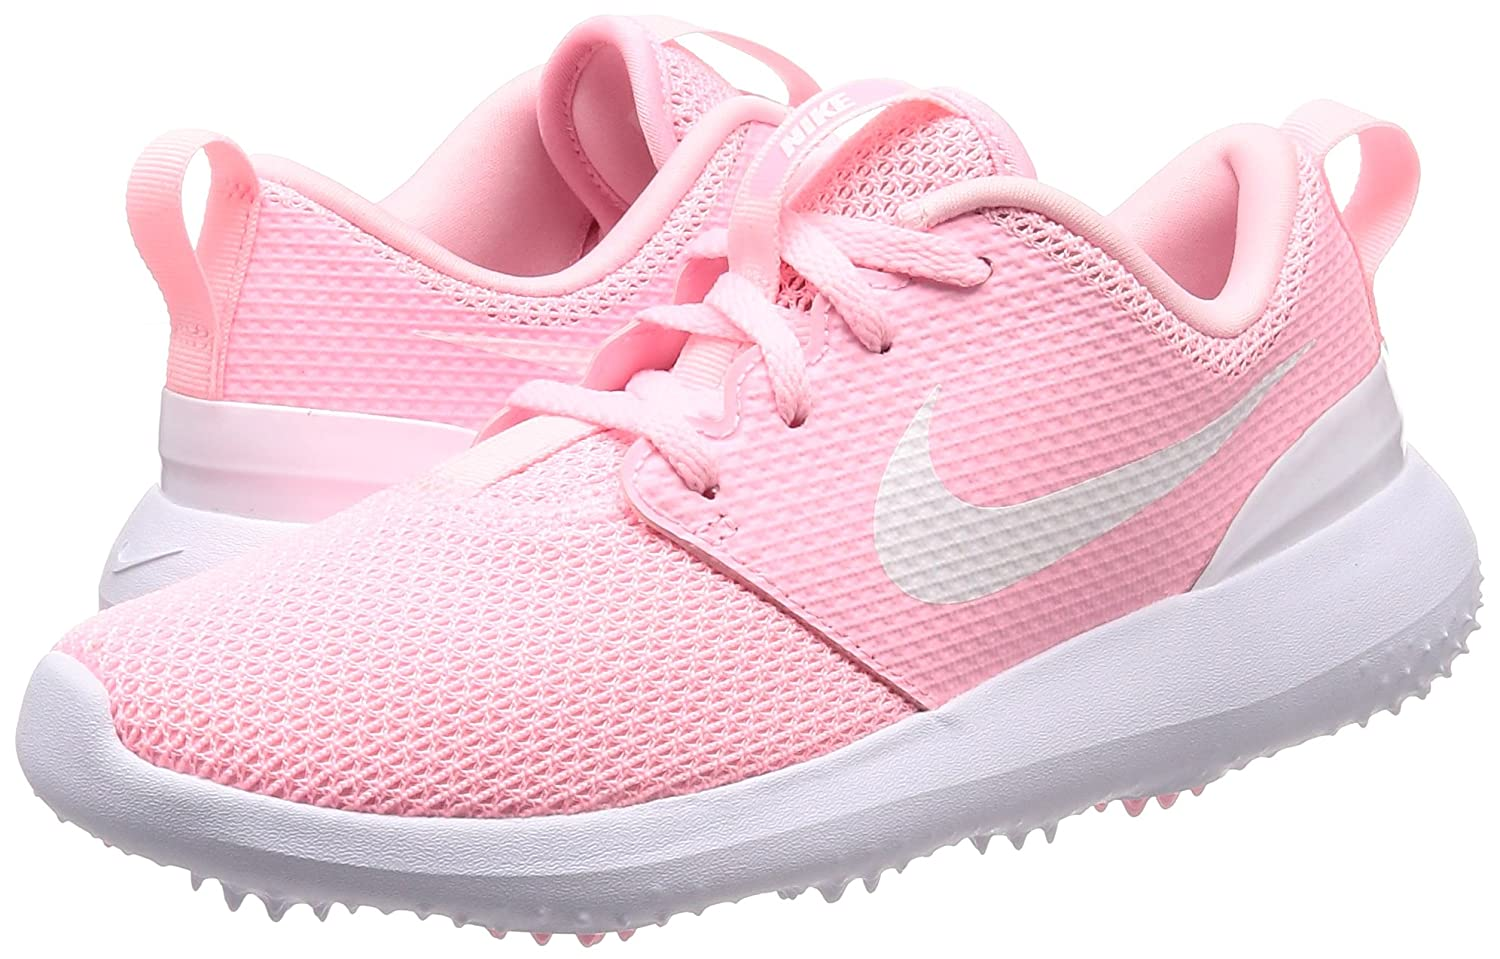 separation shoes 621b2 abed9 Nike Roshe G Spikeless Golf Shoes 2018 Women Arctic Punch White (9 B US)   Amazon.ca  Shoes   Handbags